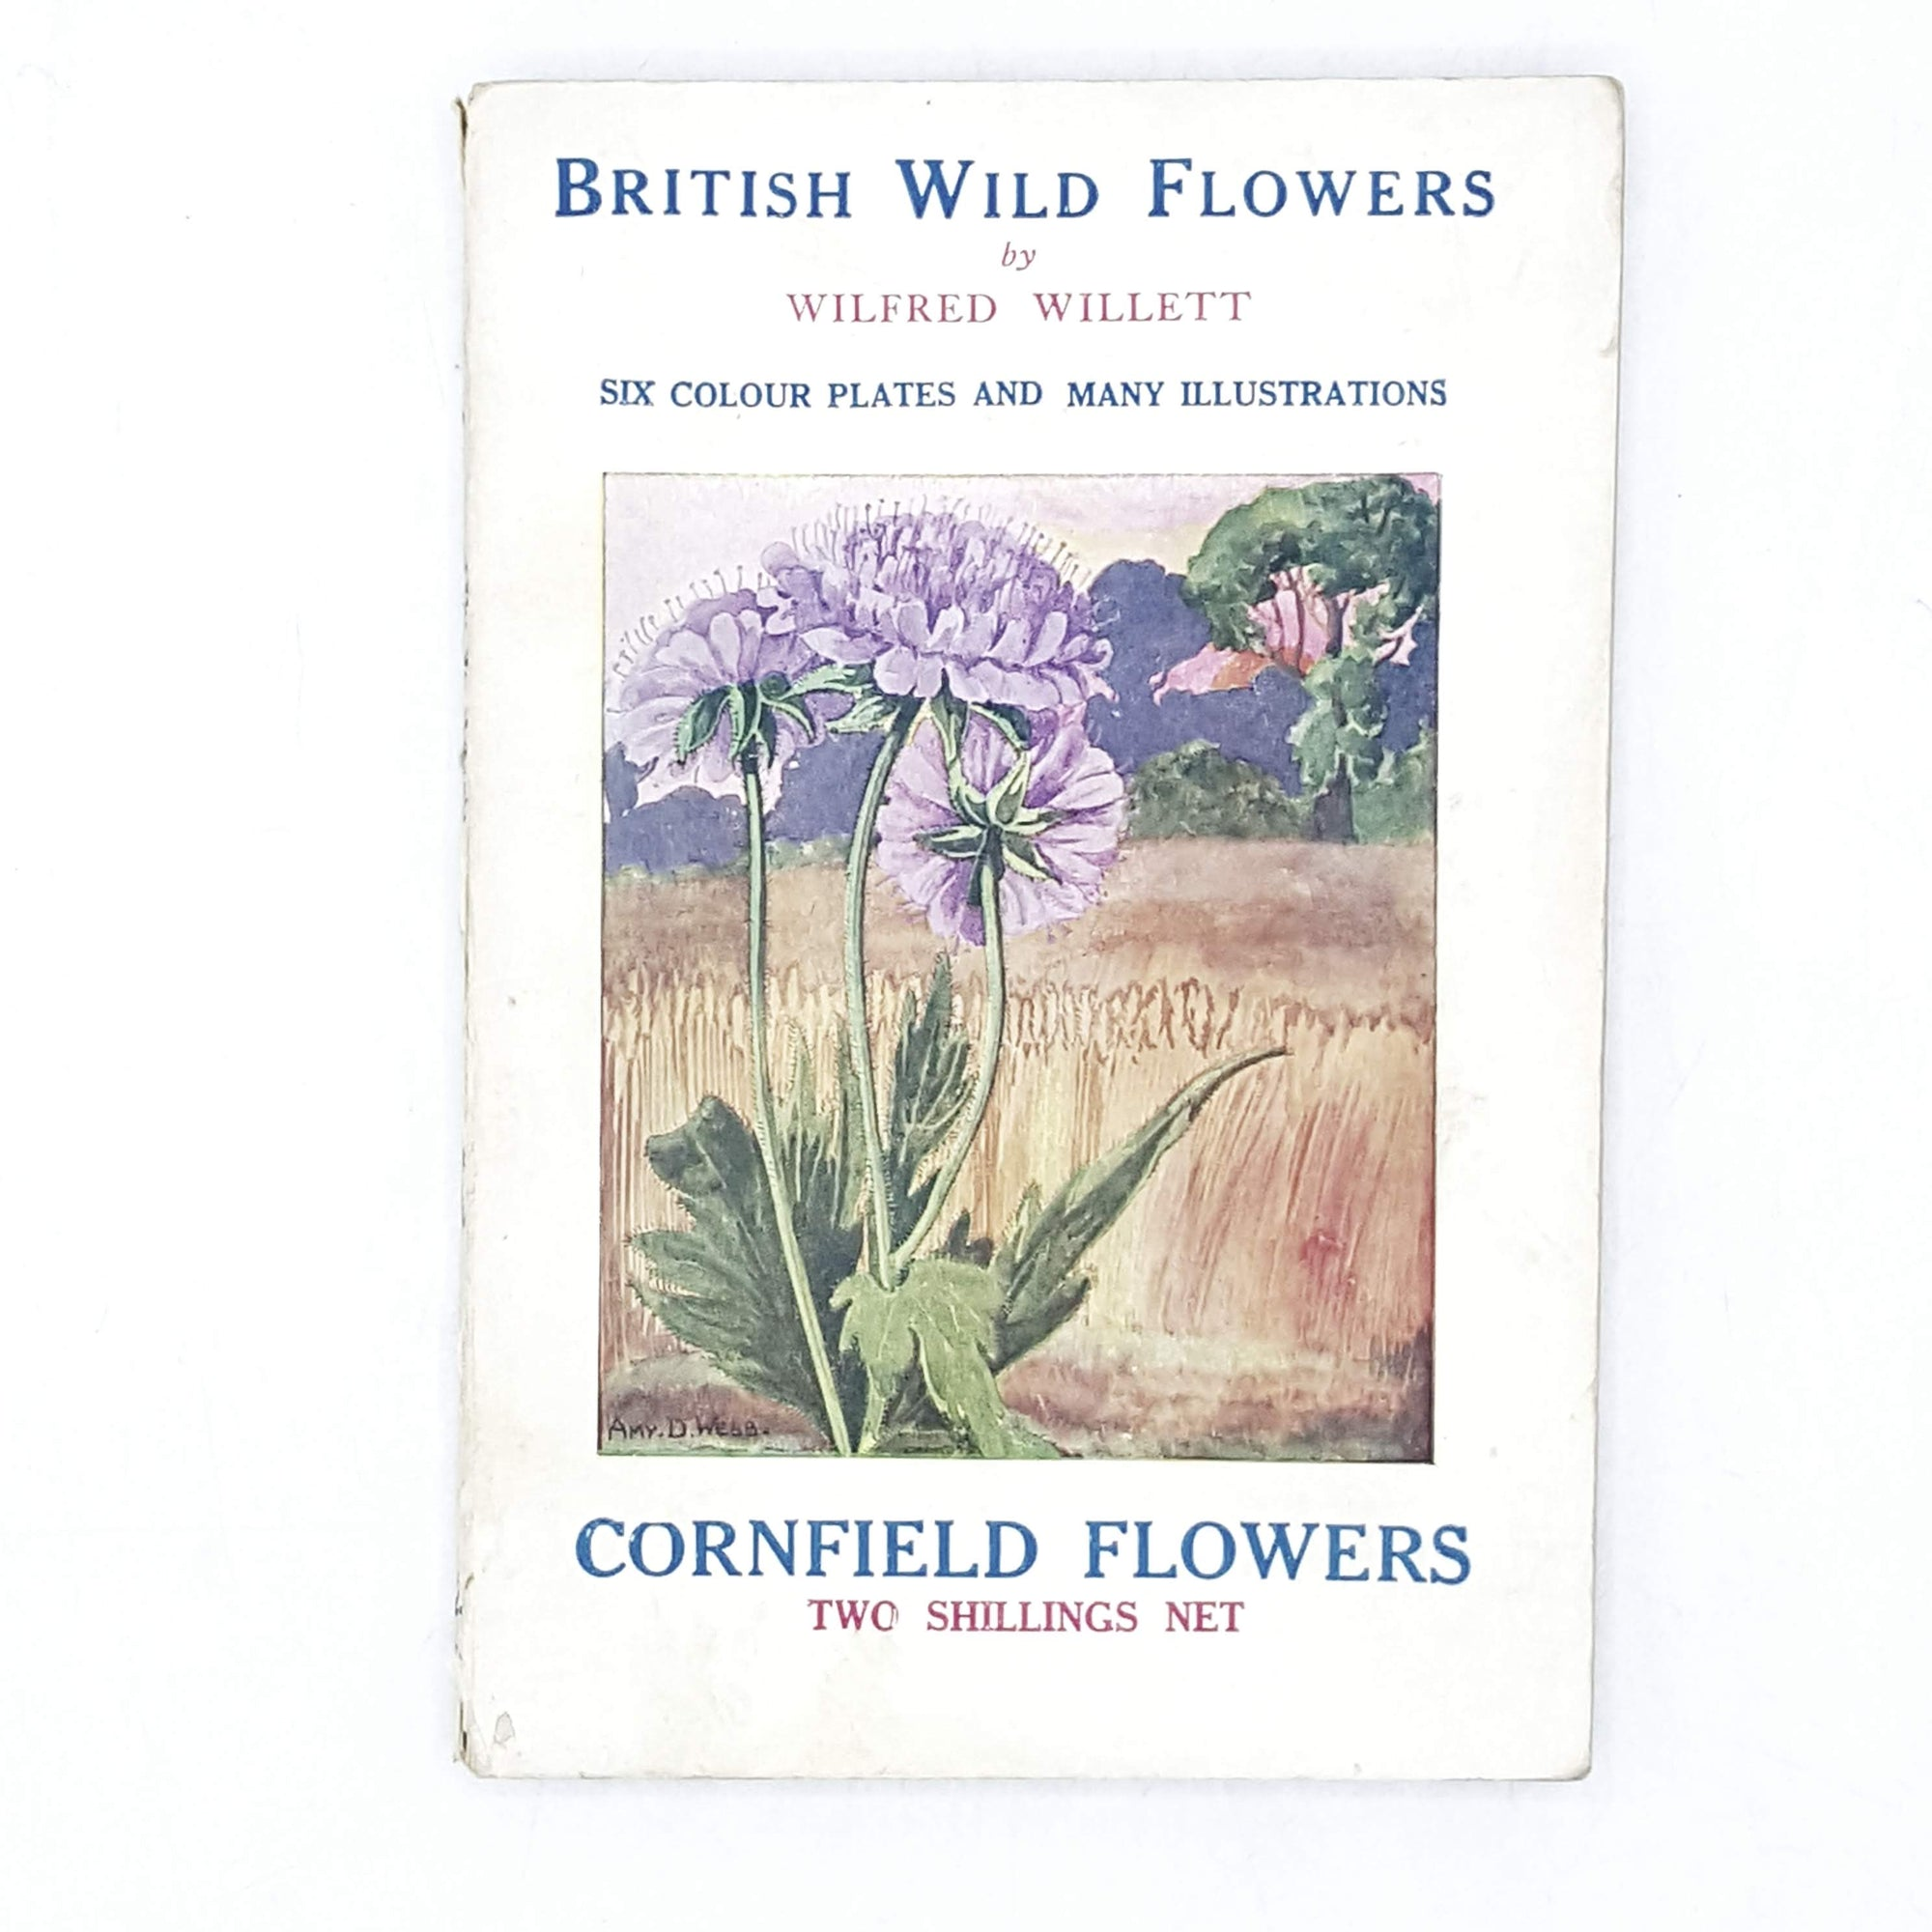 British Wild Flowers: Cornfield Flowers by Wilfred Willet